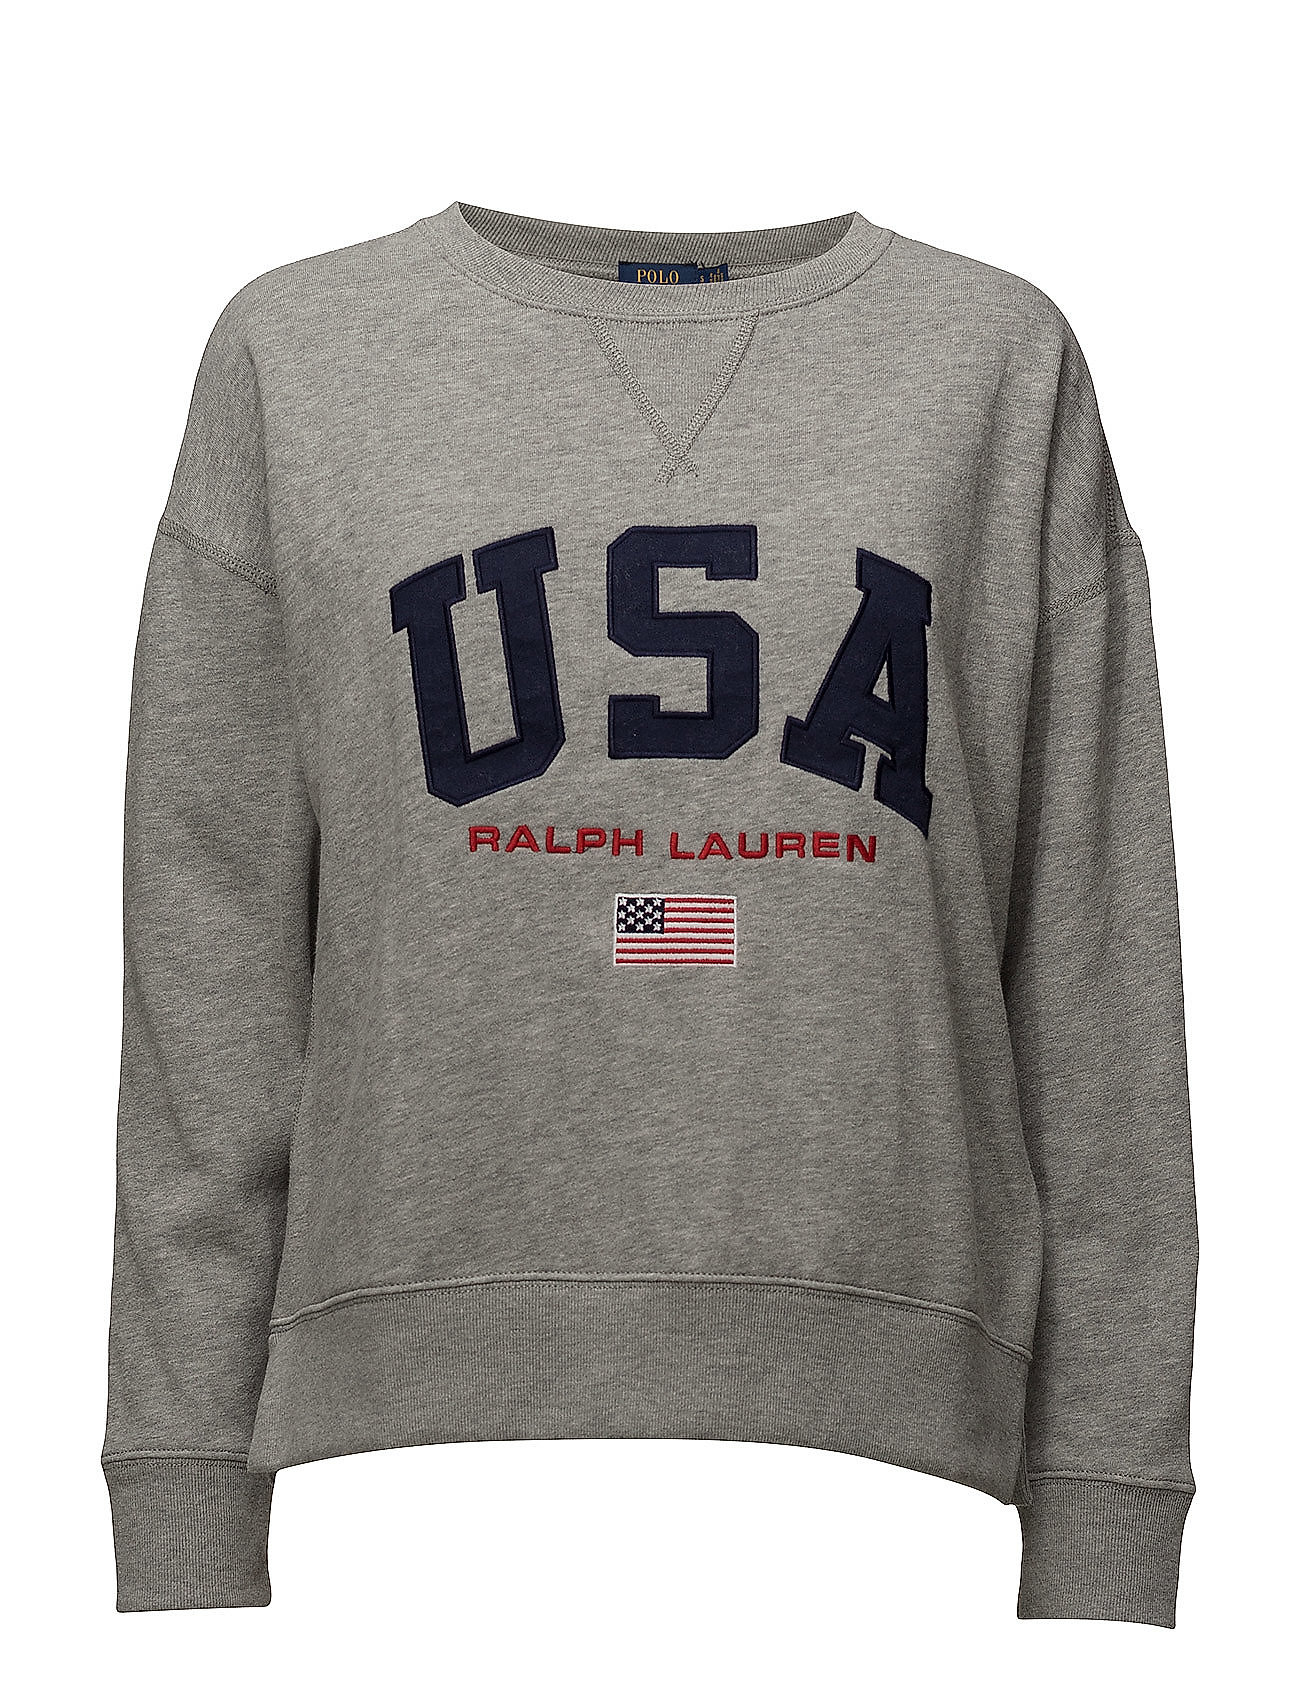 Polo Ralph Lauren USA Fleece Sweatshirt